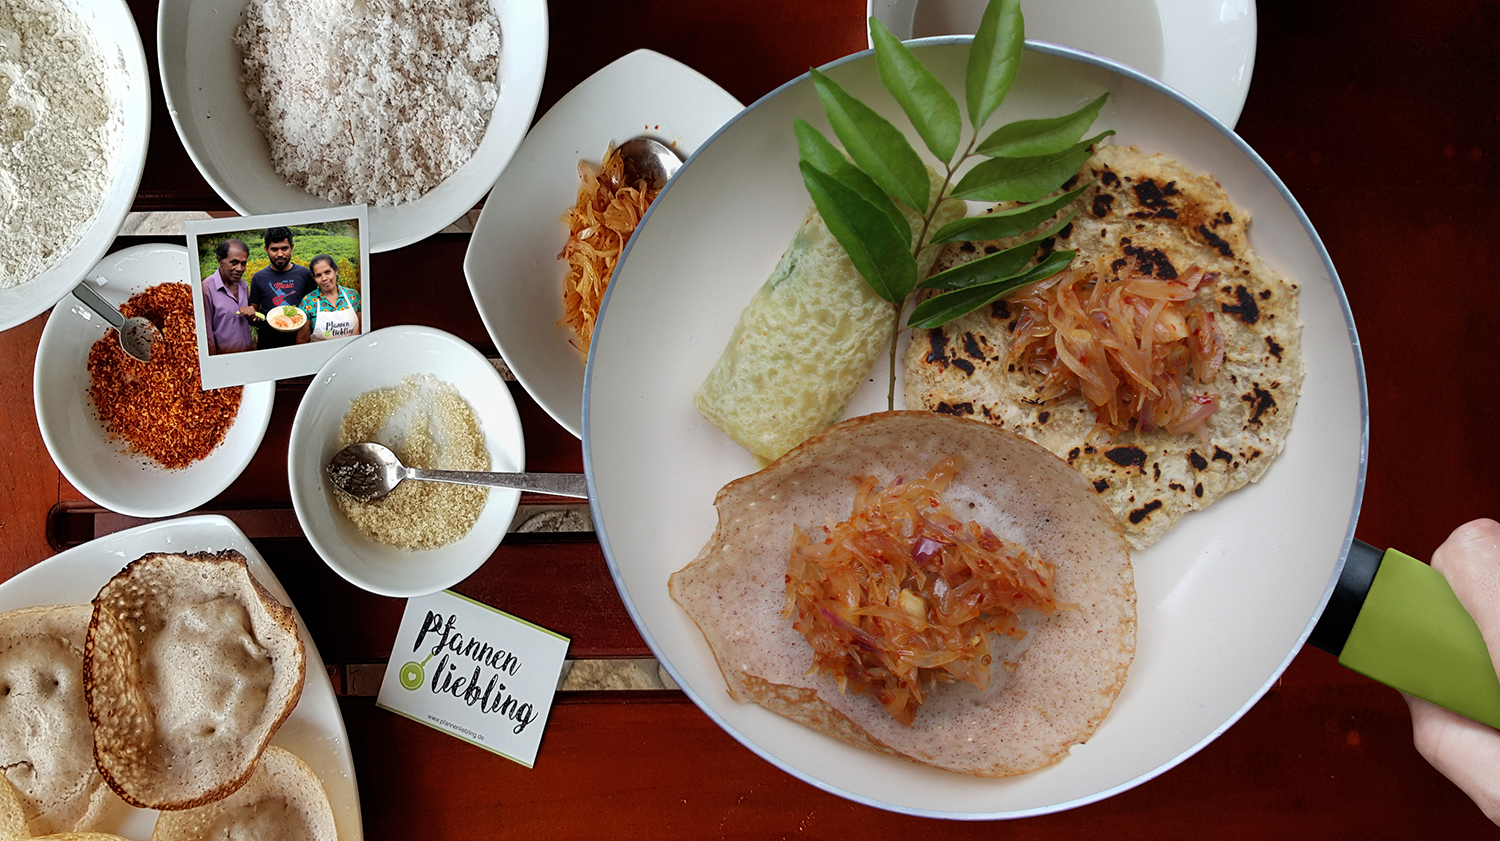 Hoppers und Coconut Rotti